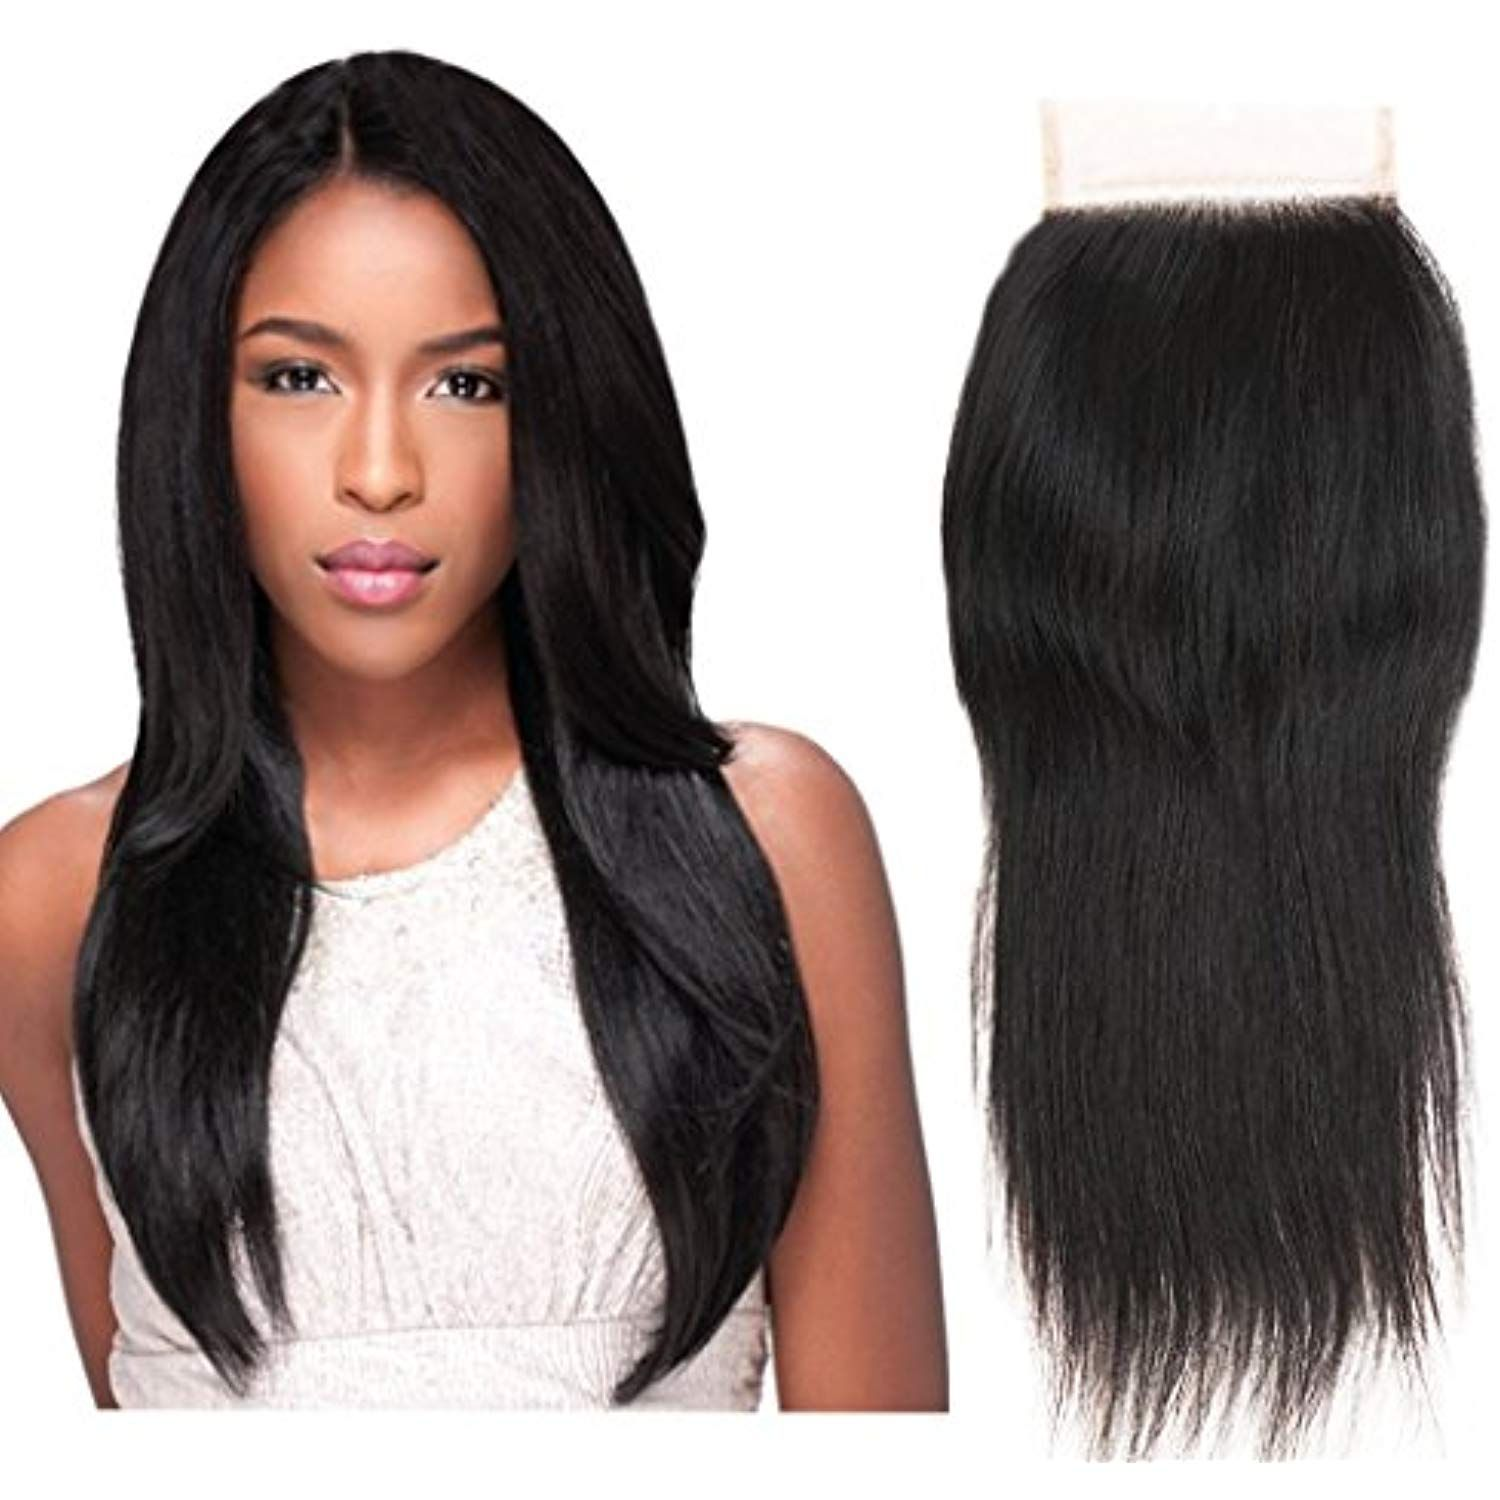 Kbeth 4x4 Closure Free Part Straight Human Hair Bleached